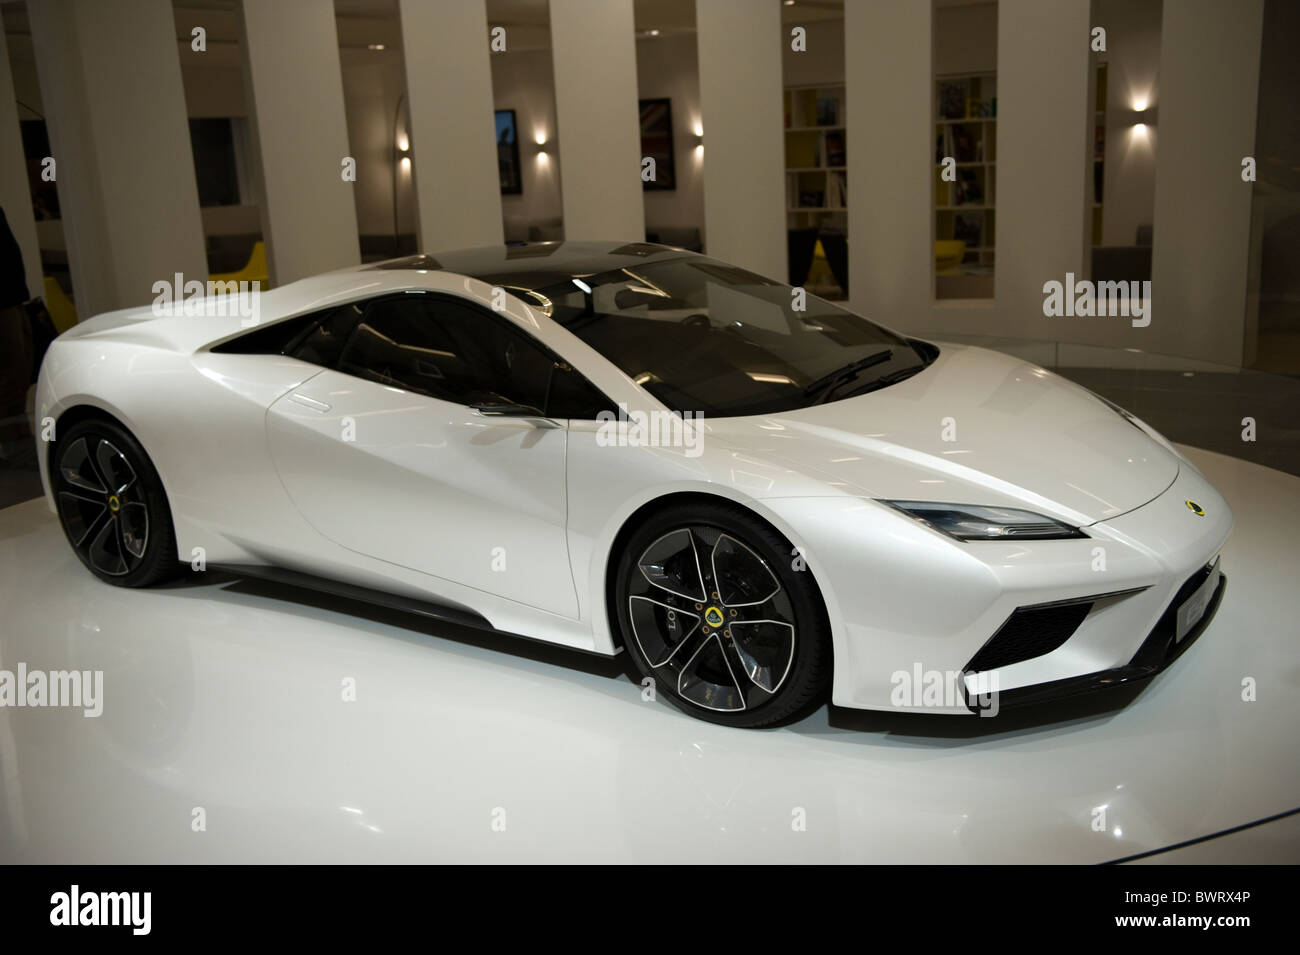 https://c8.alamy.com/comp/BWRX4P/a-lotus-esprit-concept-car-at-the-2010-la-auto-show-los-angeles-california-BWRX4P.jpg